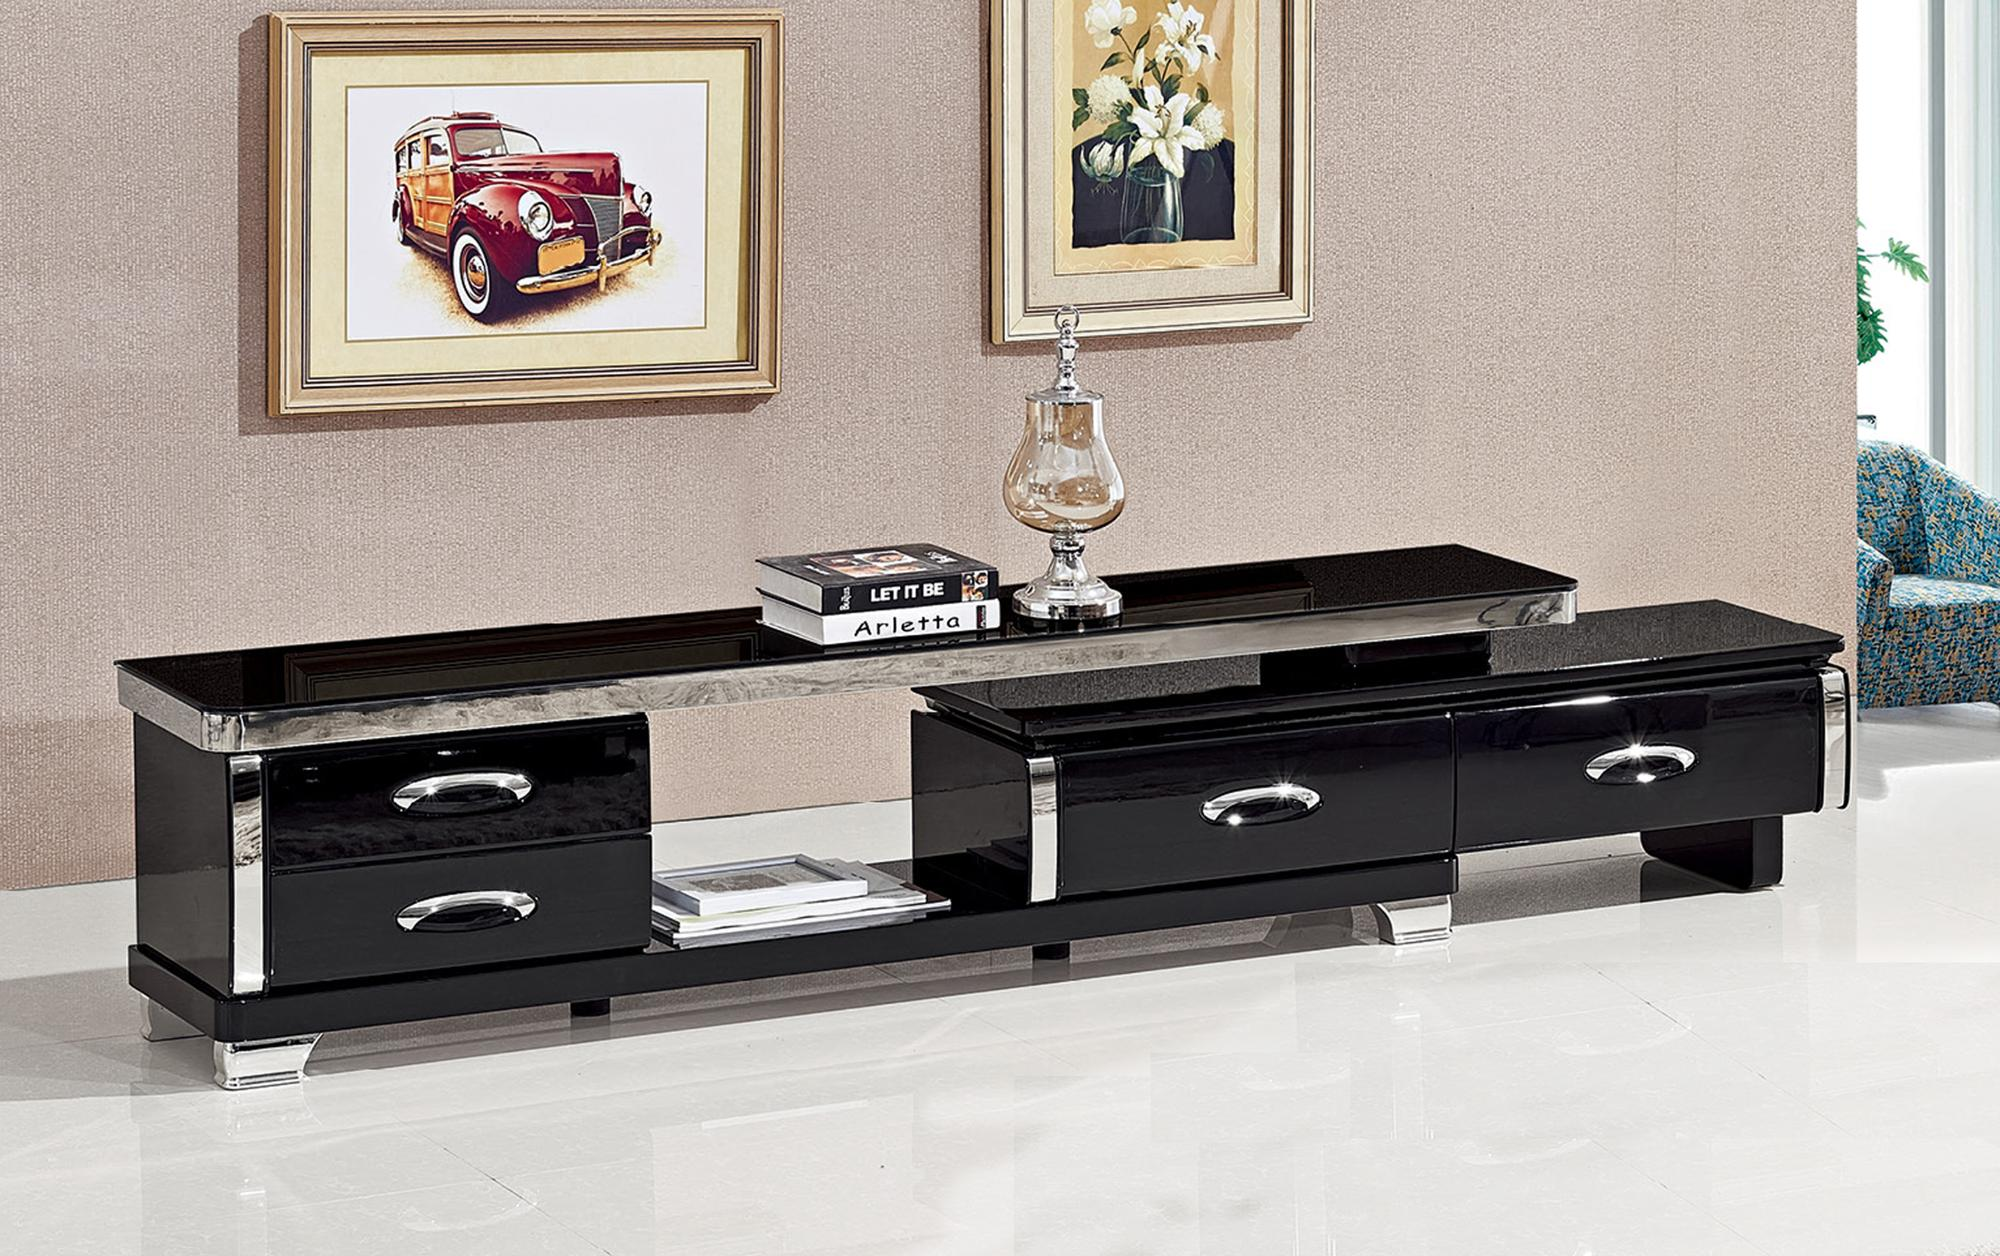 New Model Black Glass Top Mirror Tv Table Stand Modern Design Tv Stand  Living Room Table Furniture - Buy Living Room Table,Tv Table Stand,Tv Stand  ...